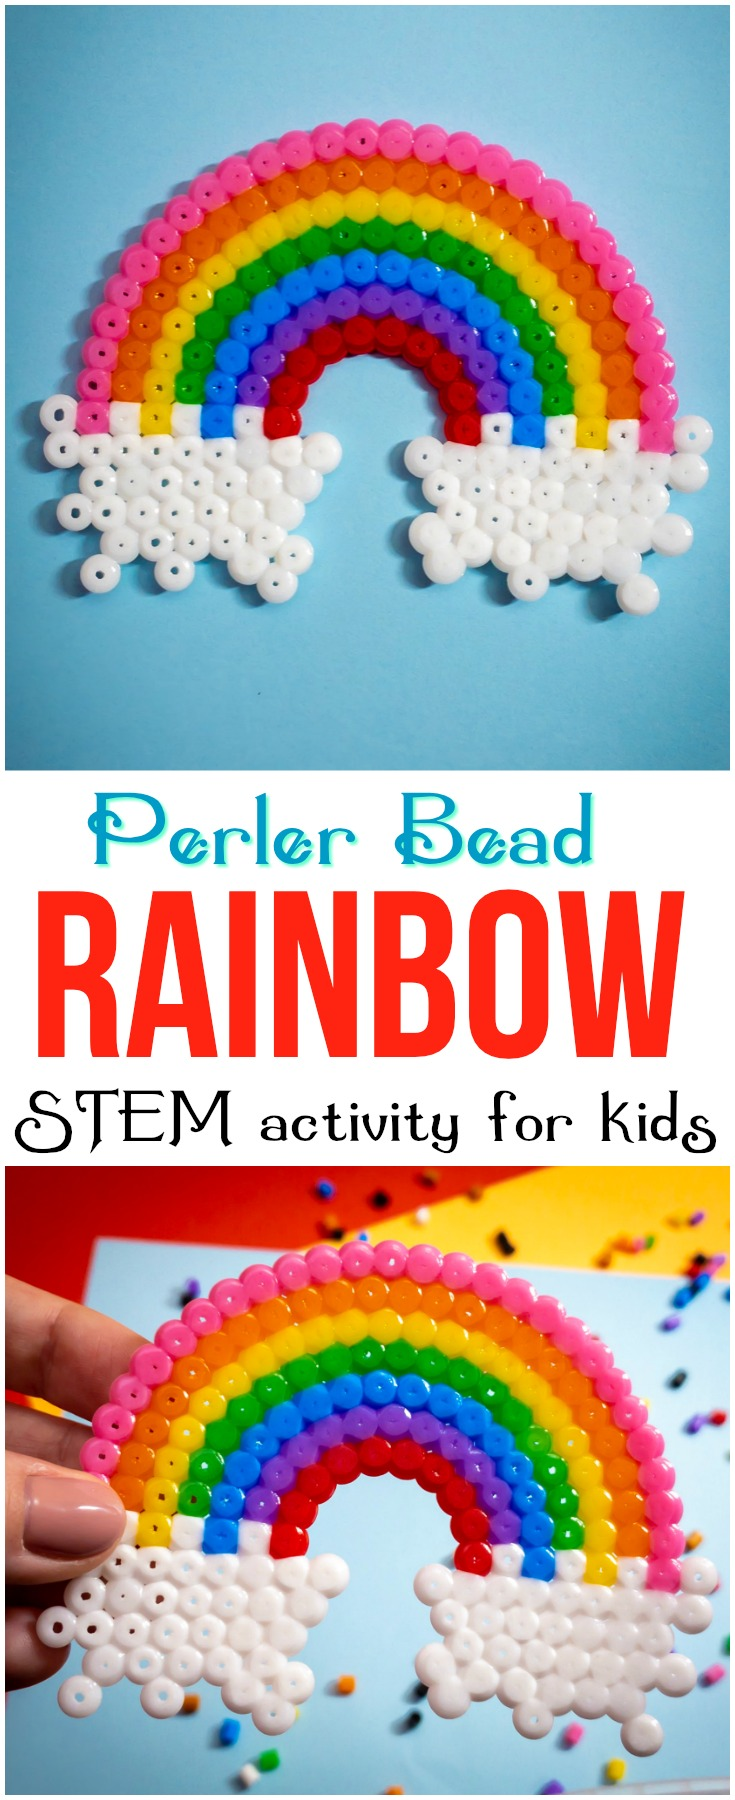 This perler bead rainbow will help kids develop fine motor skills, patience and artistic design while making a cute craft that's fun and colorful! #perler #perlerbead #rainbow #rainbowcraft #kids #craft #STEM